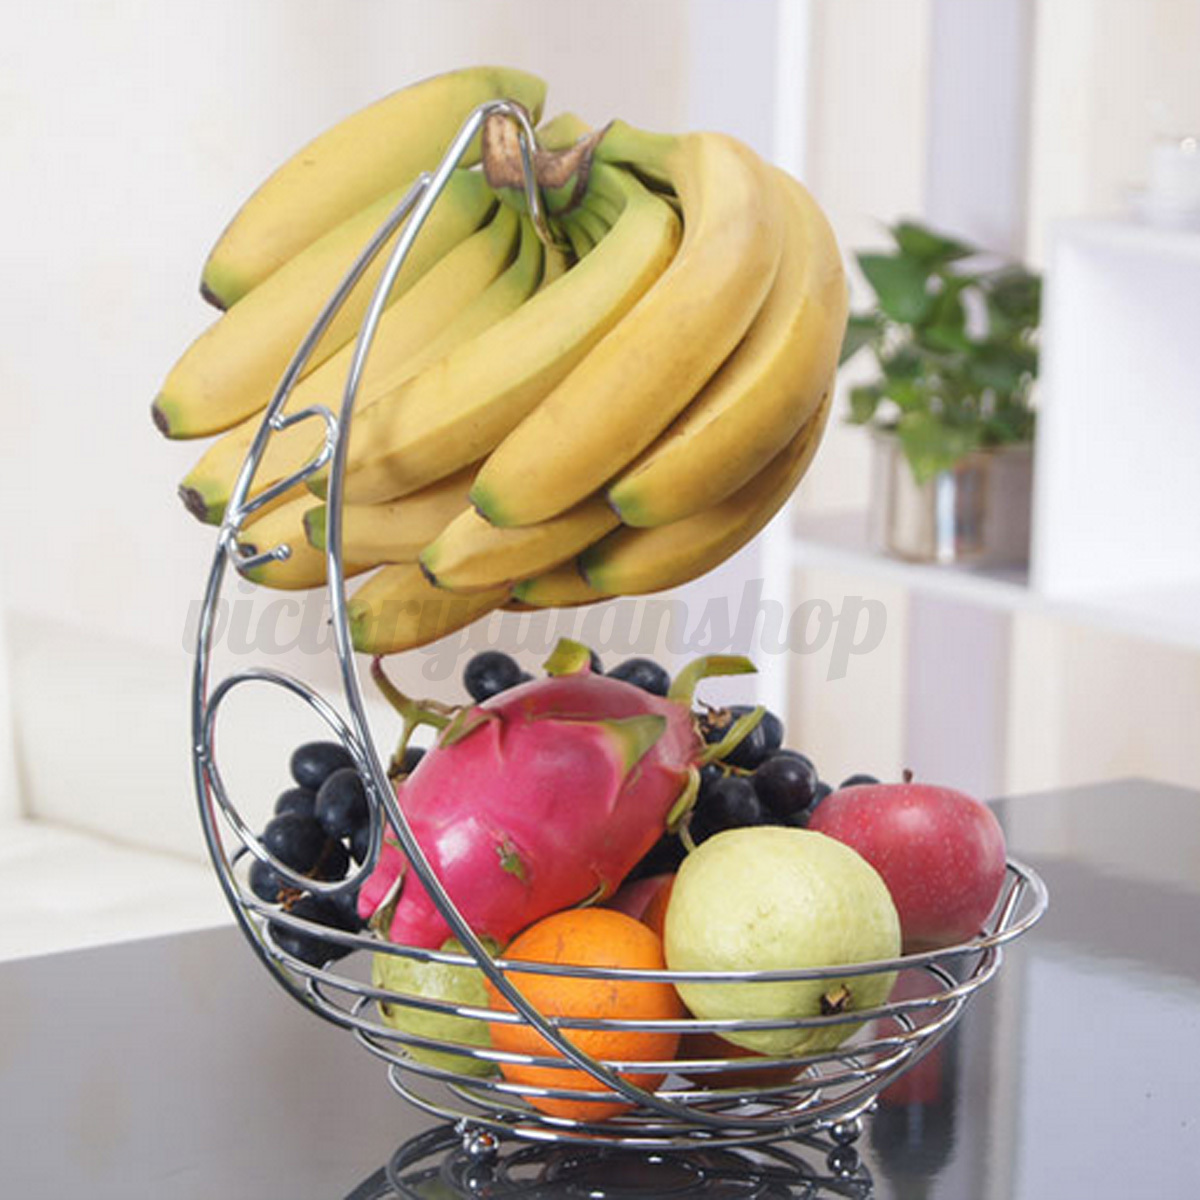 obstschale obst gem se korb fr chtekorb aufbewahrung mit bananenhalter haken ebay. Black Bedroom Furniture Sets. Home Design Ideas